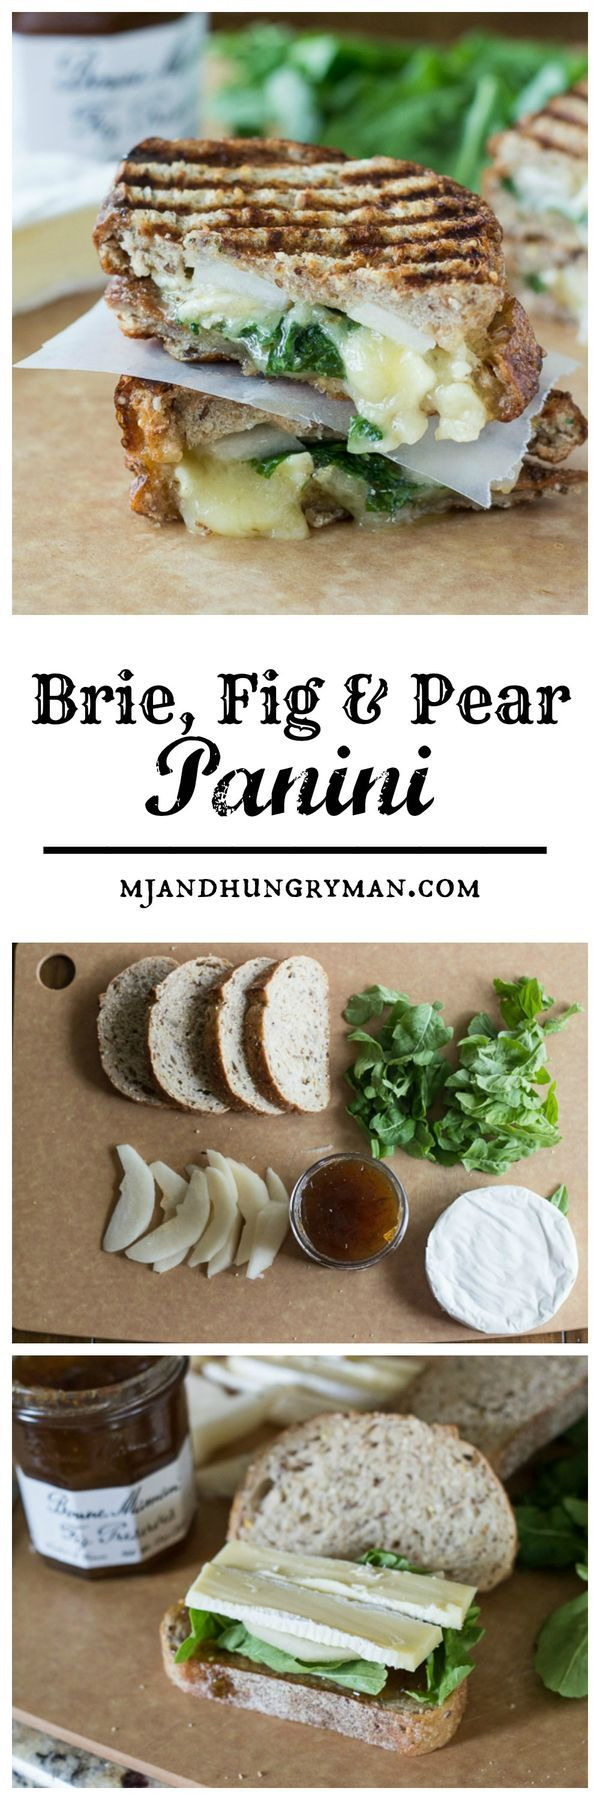 Brie, Fig and Pear Panini // MJ and Hungryman